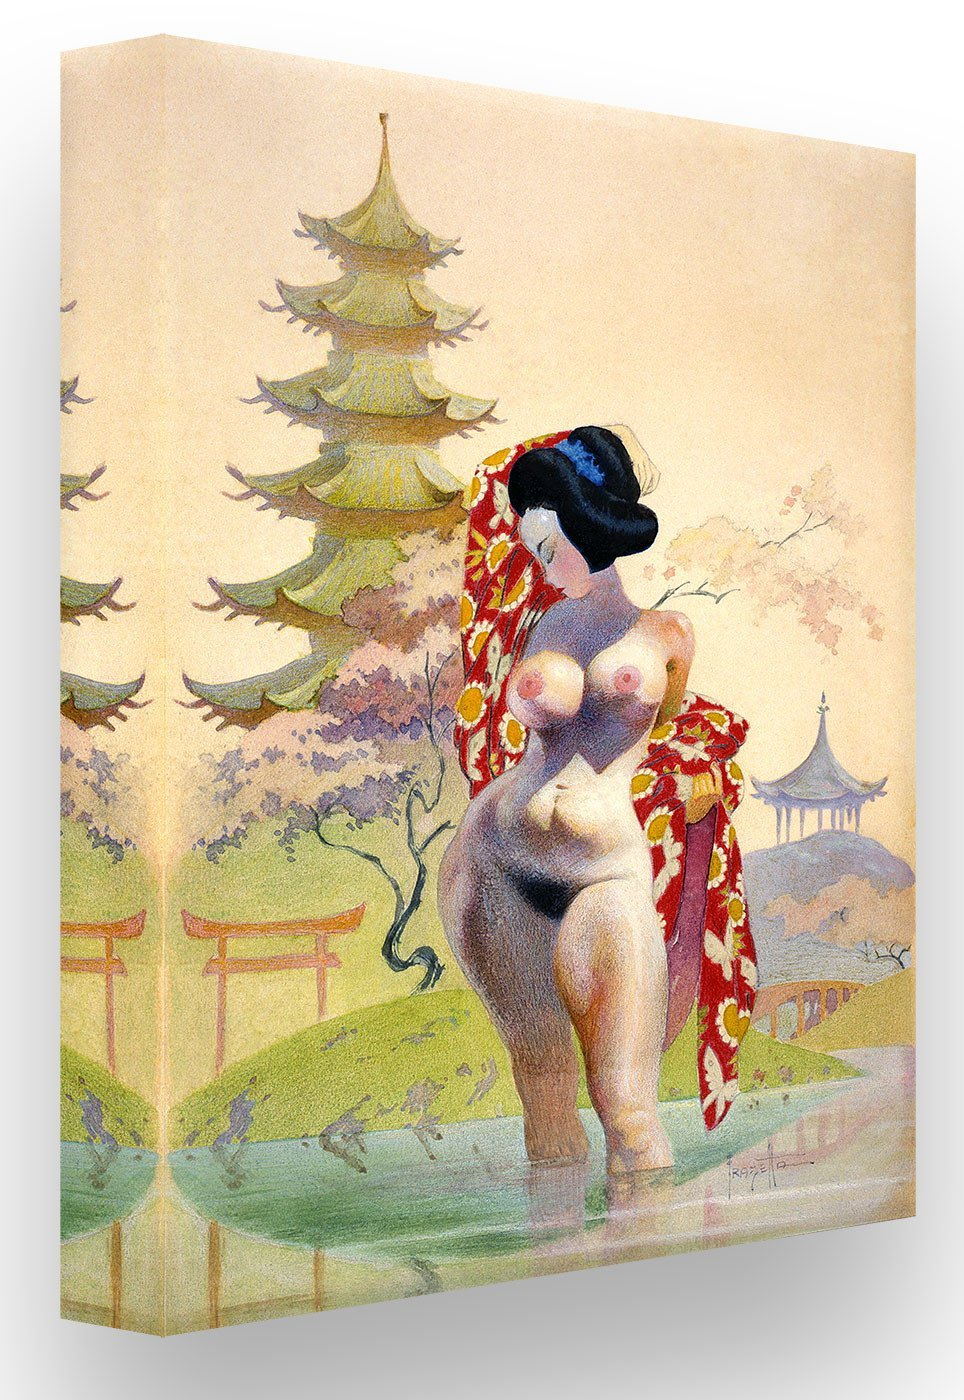 FrazettaGirls Art Print Canvas / Stretched on wooden bar / 16x20 Geisha Print